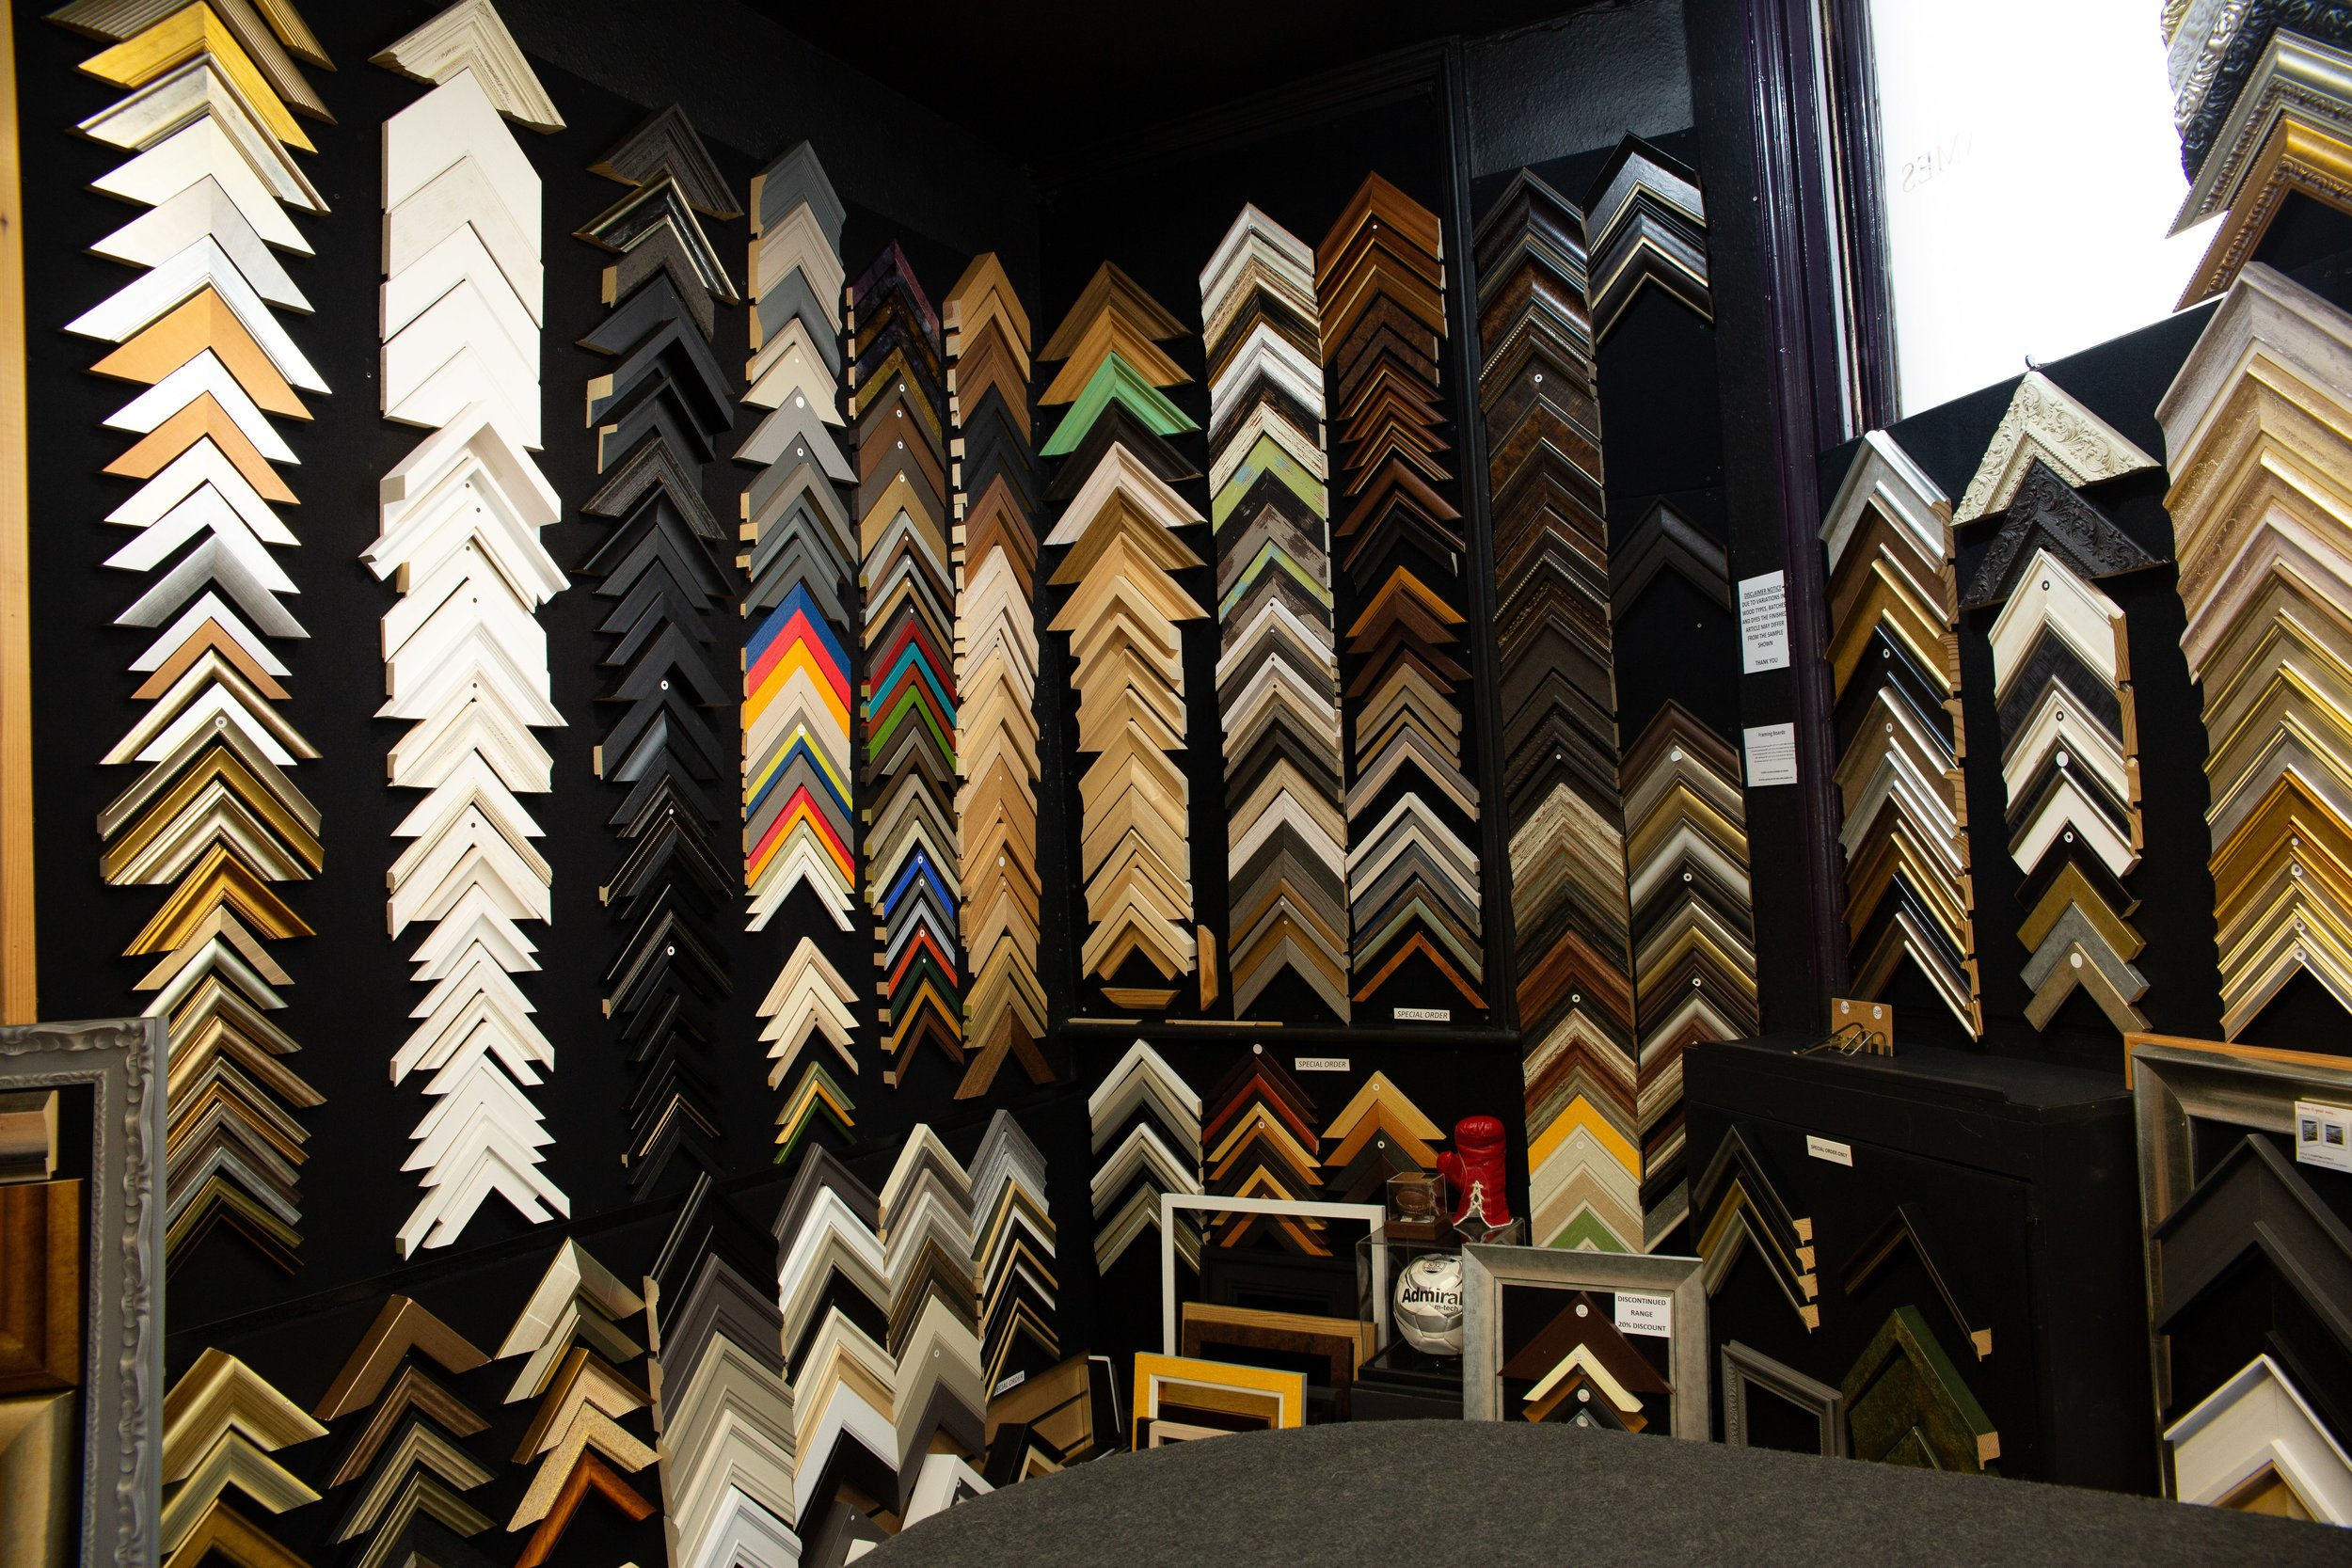 Bespoke picture framing - We stock over 250 quality frame mouldings with a further 5000 plus available to order.